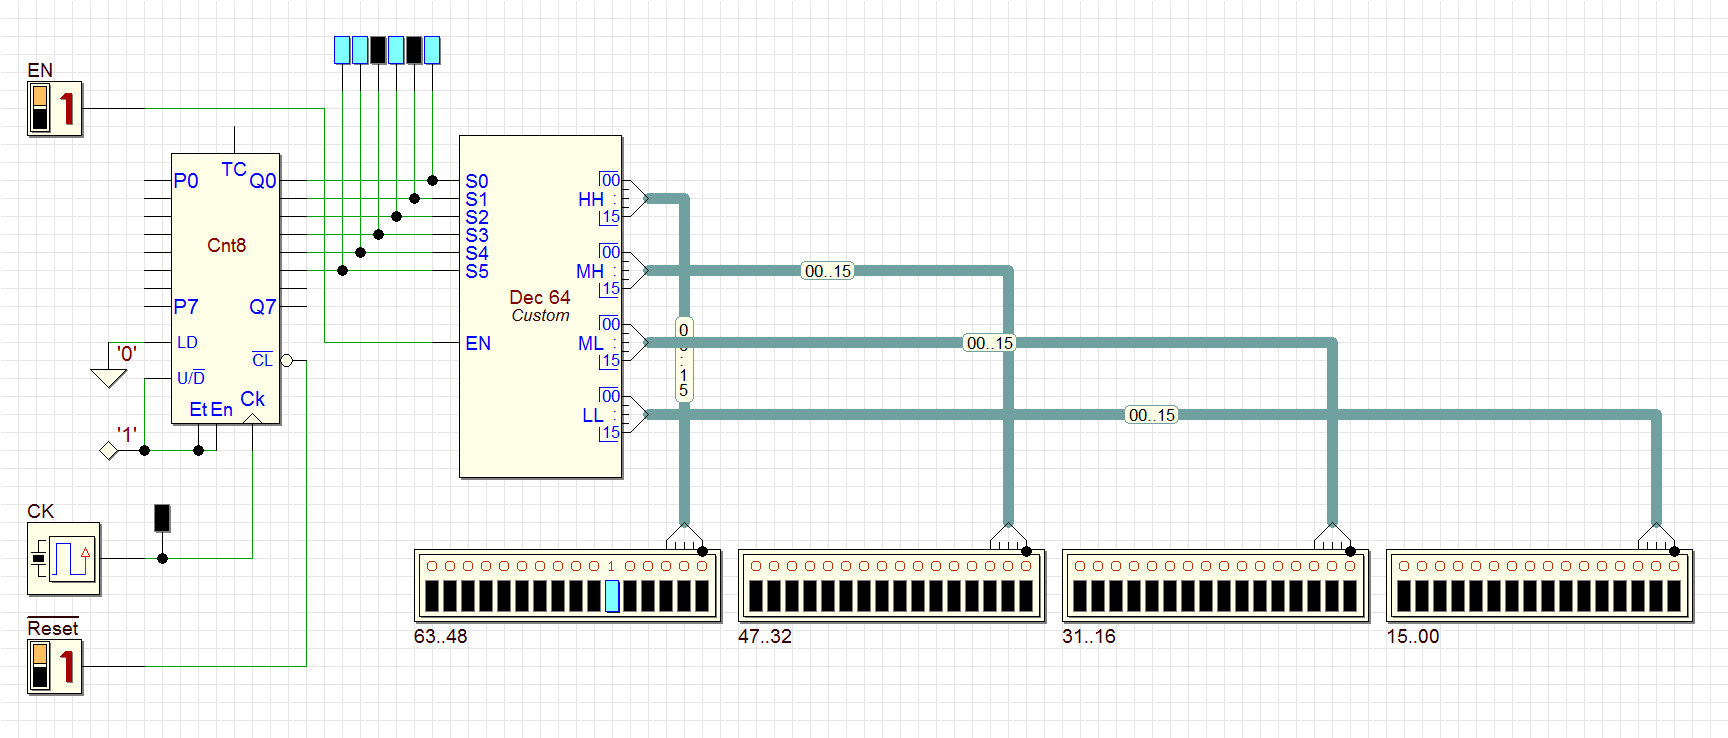 Deeds Version Notes Diagram Shows Relationship Of Various Components To Connect A Digital Observe Also The Activity Cbe Internals Simply With Click On Component Viewer Will Show Animated Internal Schematic